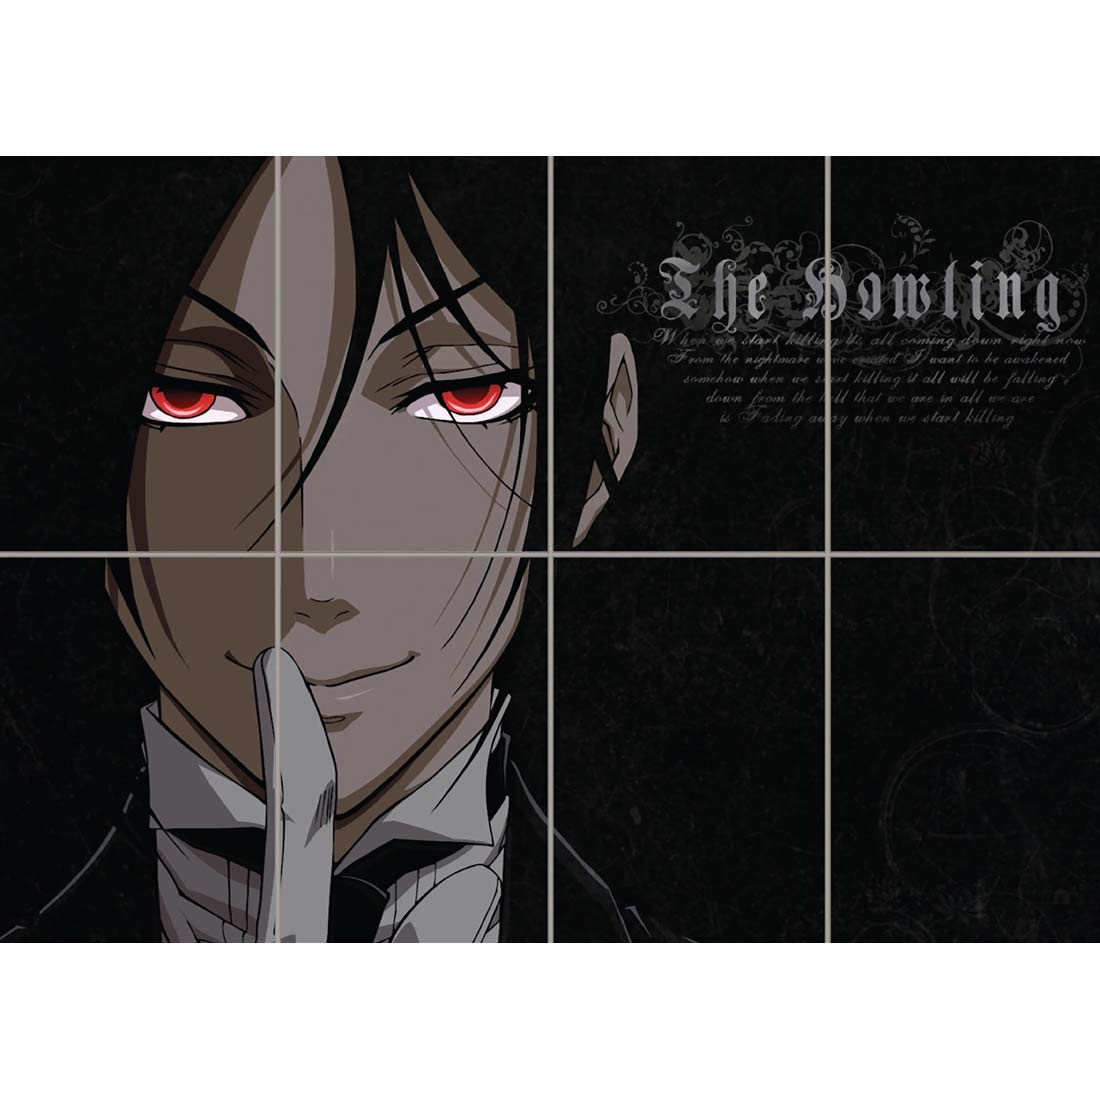 MANGA BLACK BUTLER NEW GIANT POSTER WALL ART PRINT PICTURE G874